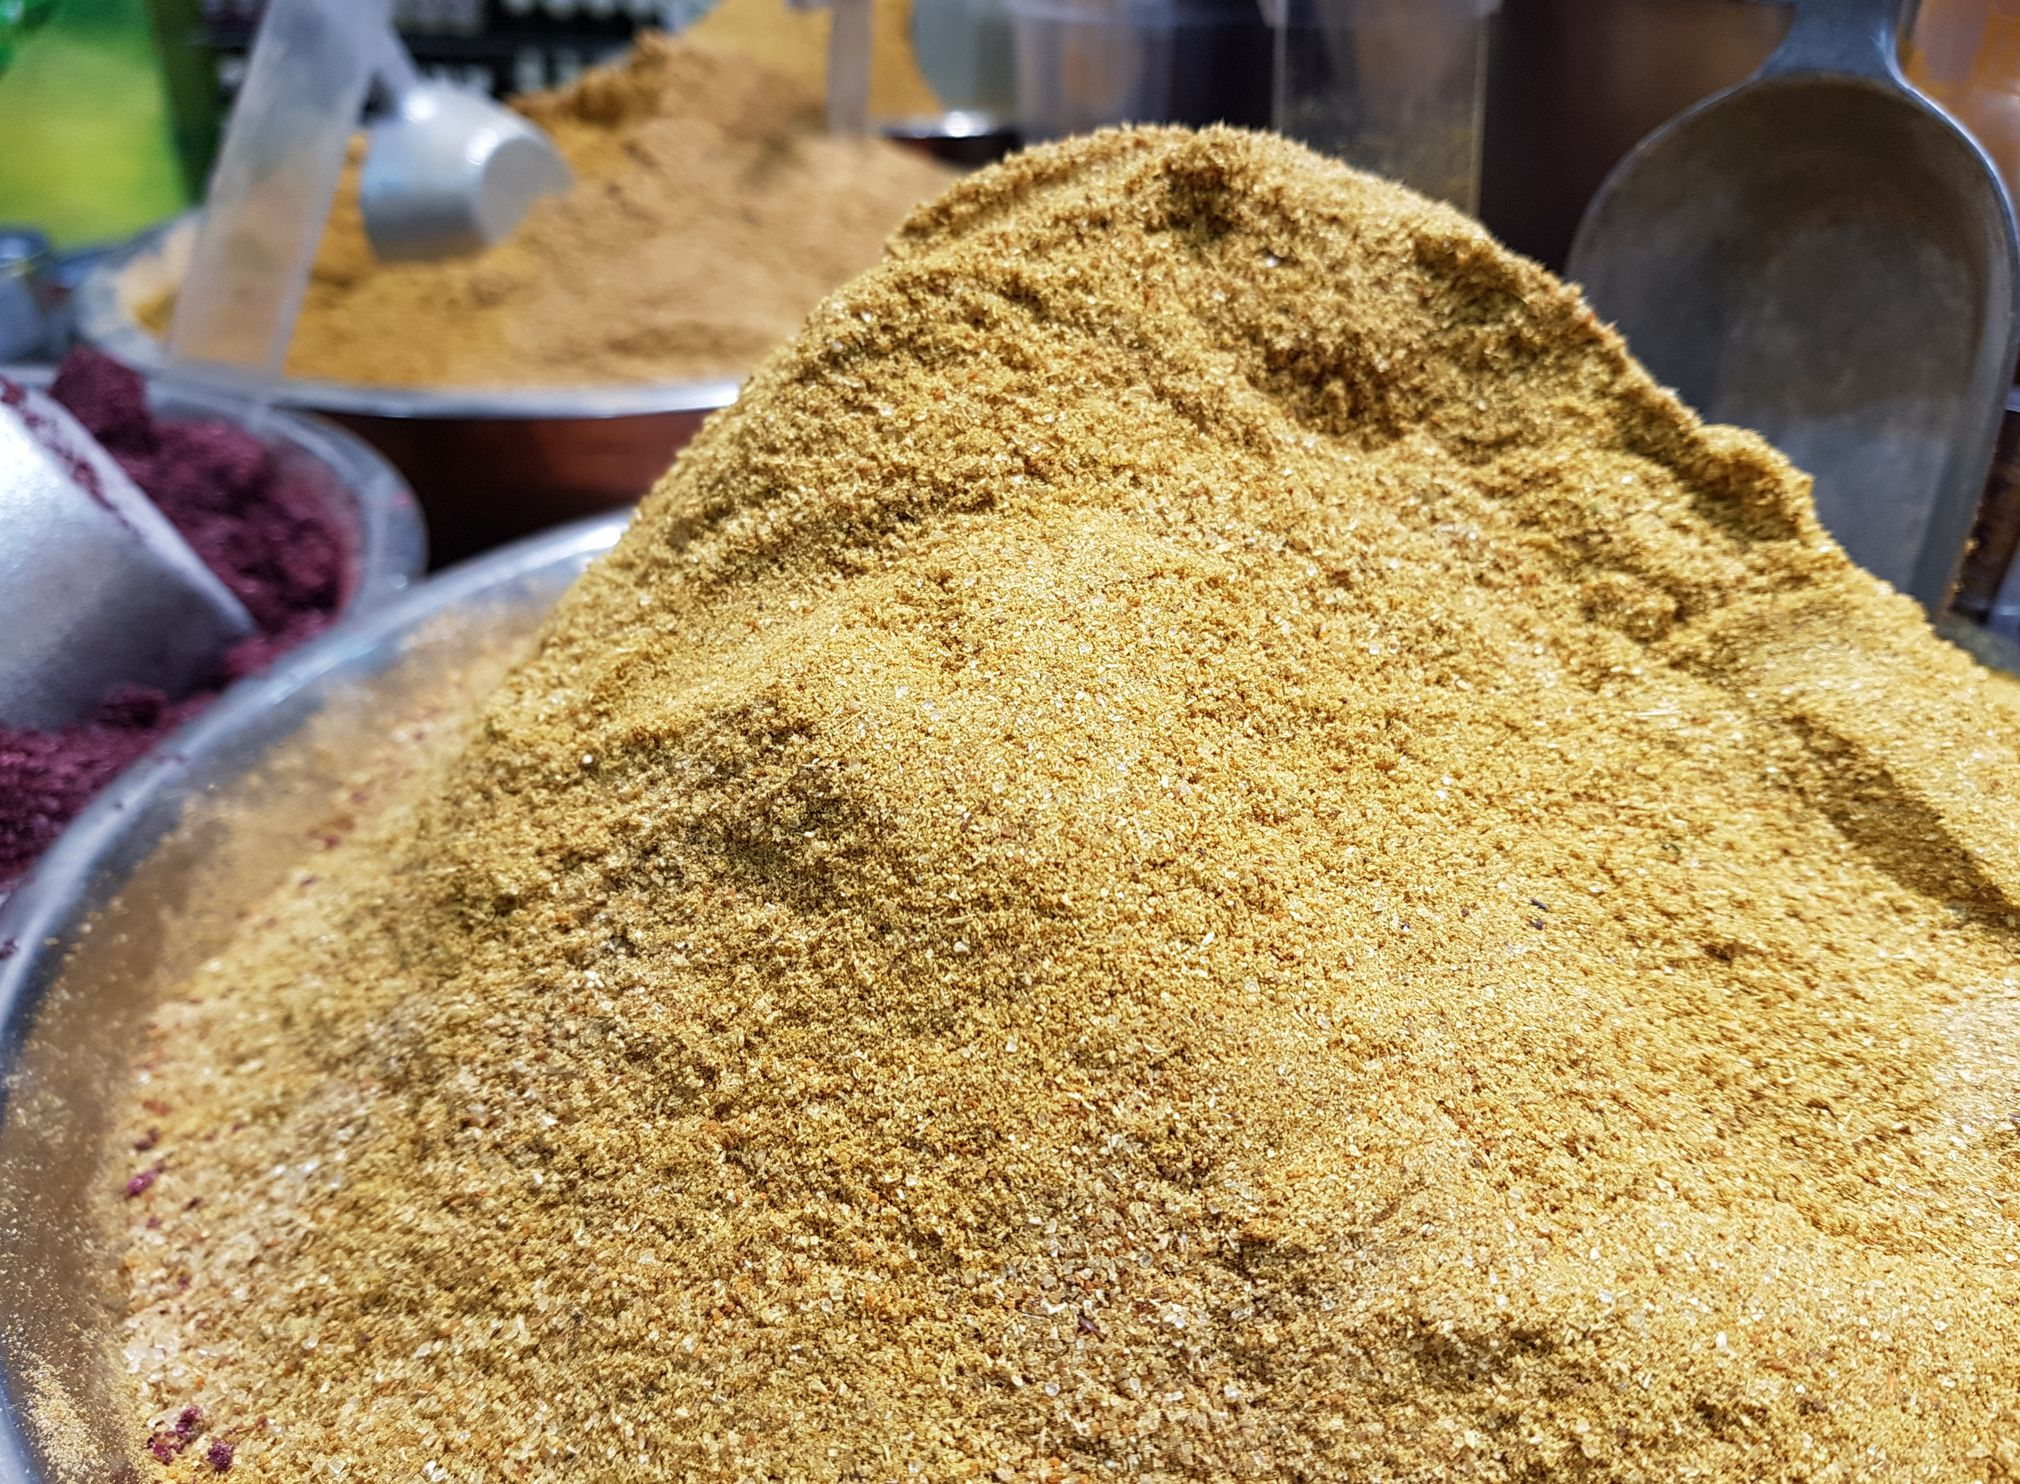 10 Most Popular Spices in Turkish Cuisine